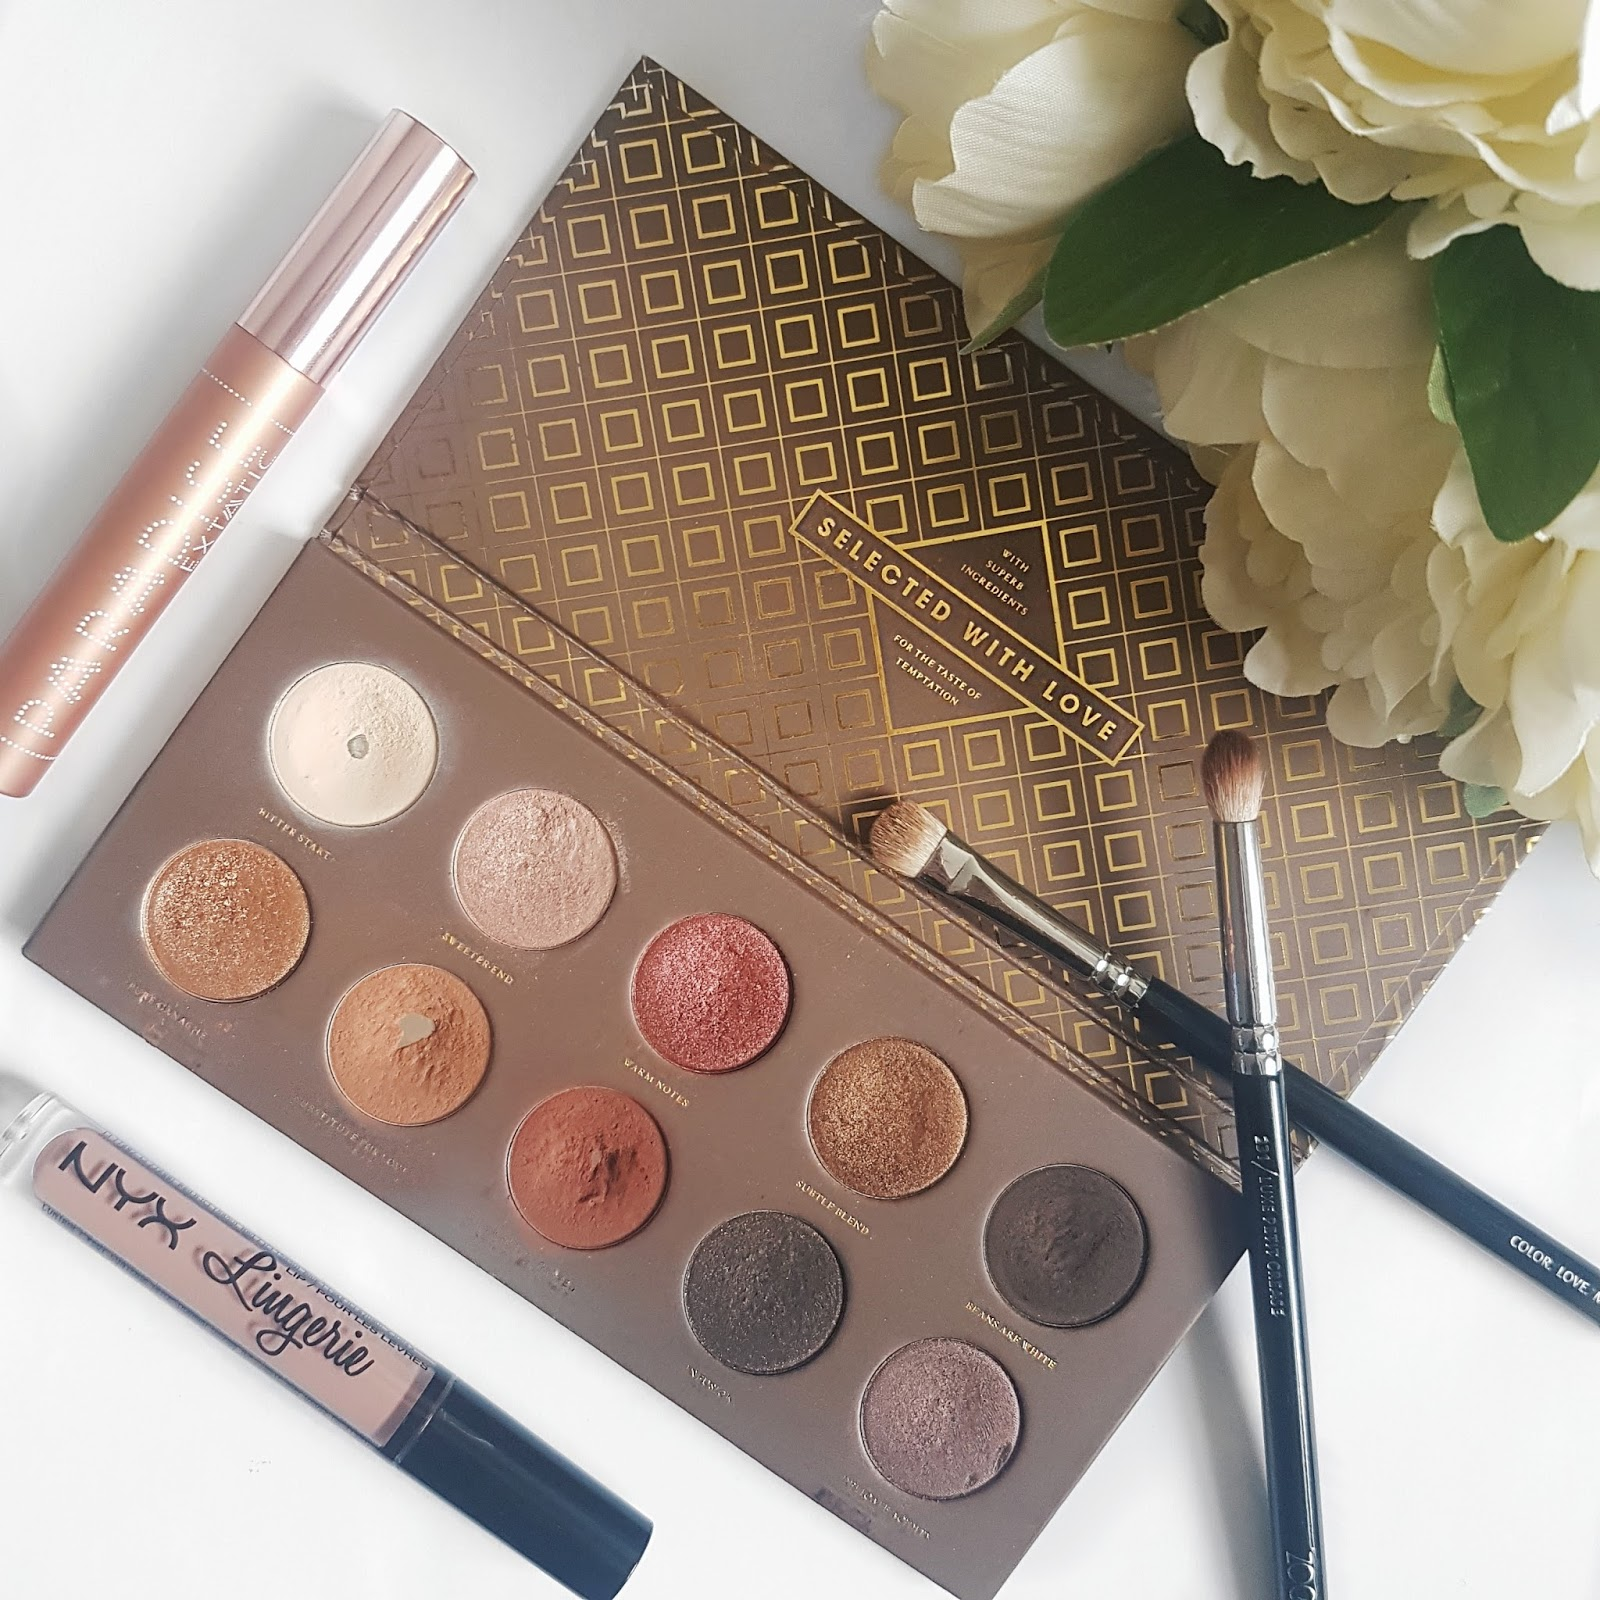 Zoeva cocoa blend eyeshadow palette and other makeup items